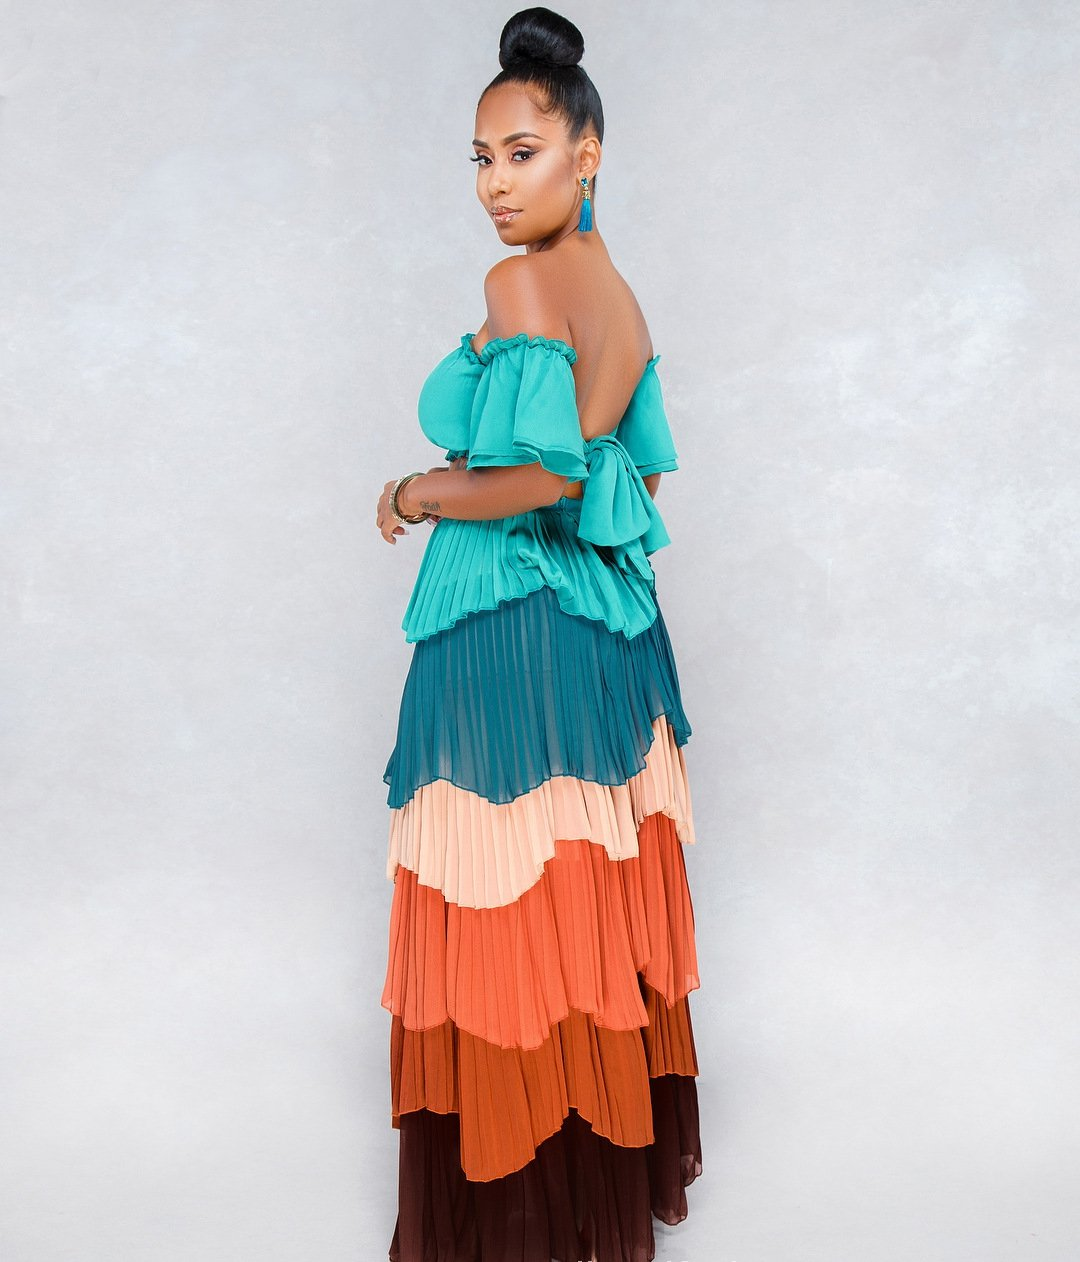 cd07141014d Sexy Africa Cake Chiffon Pleated skirt + Tube Top 2-piece – Wearways